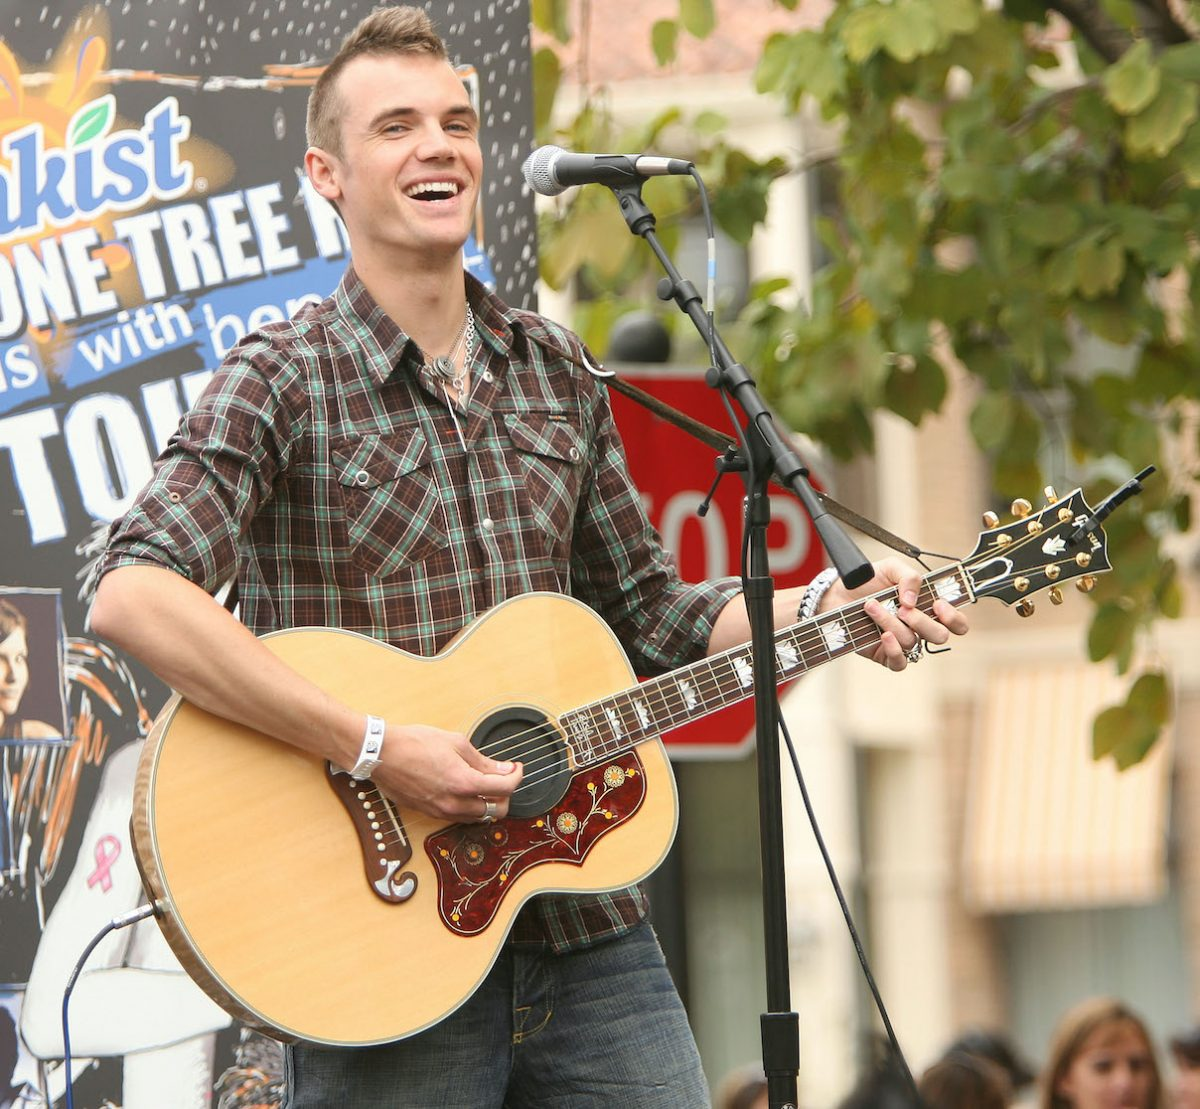 Tyler Hilton performs during the Sunkist 'One Tree Hill' Friends with Benefits Tour